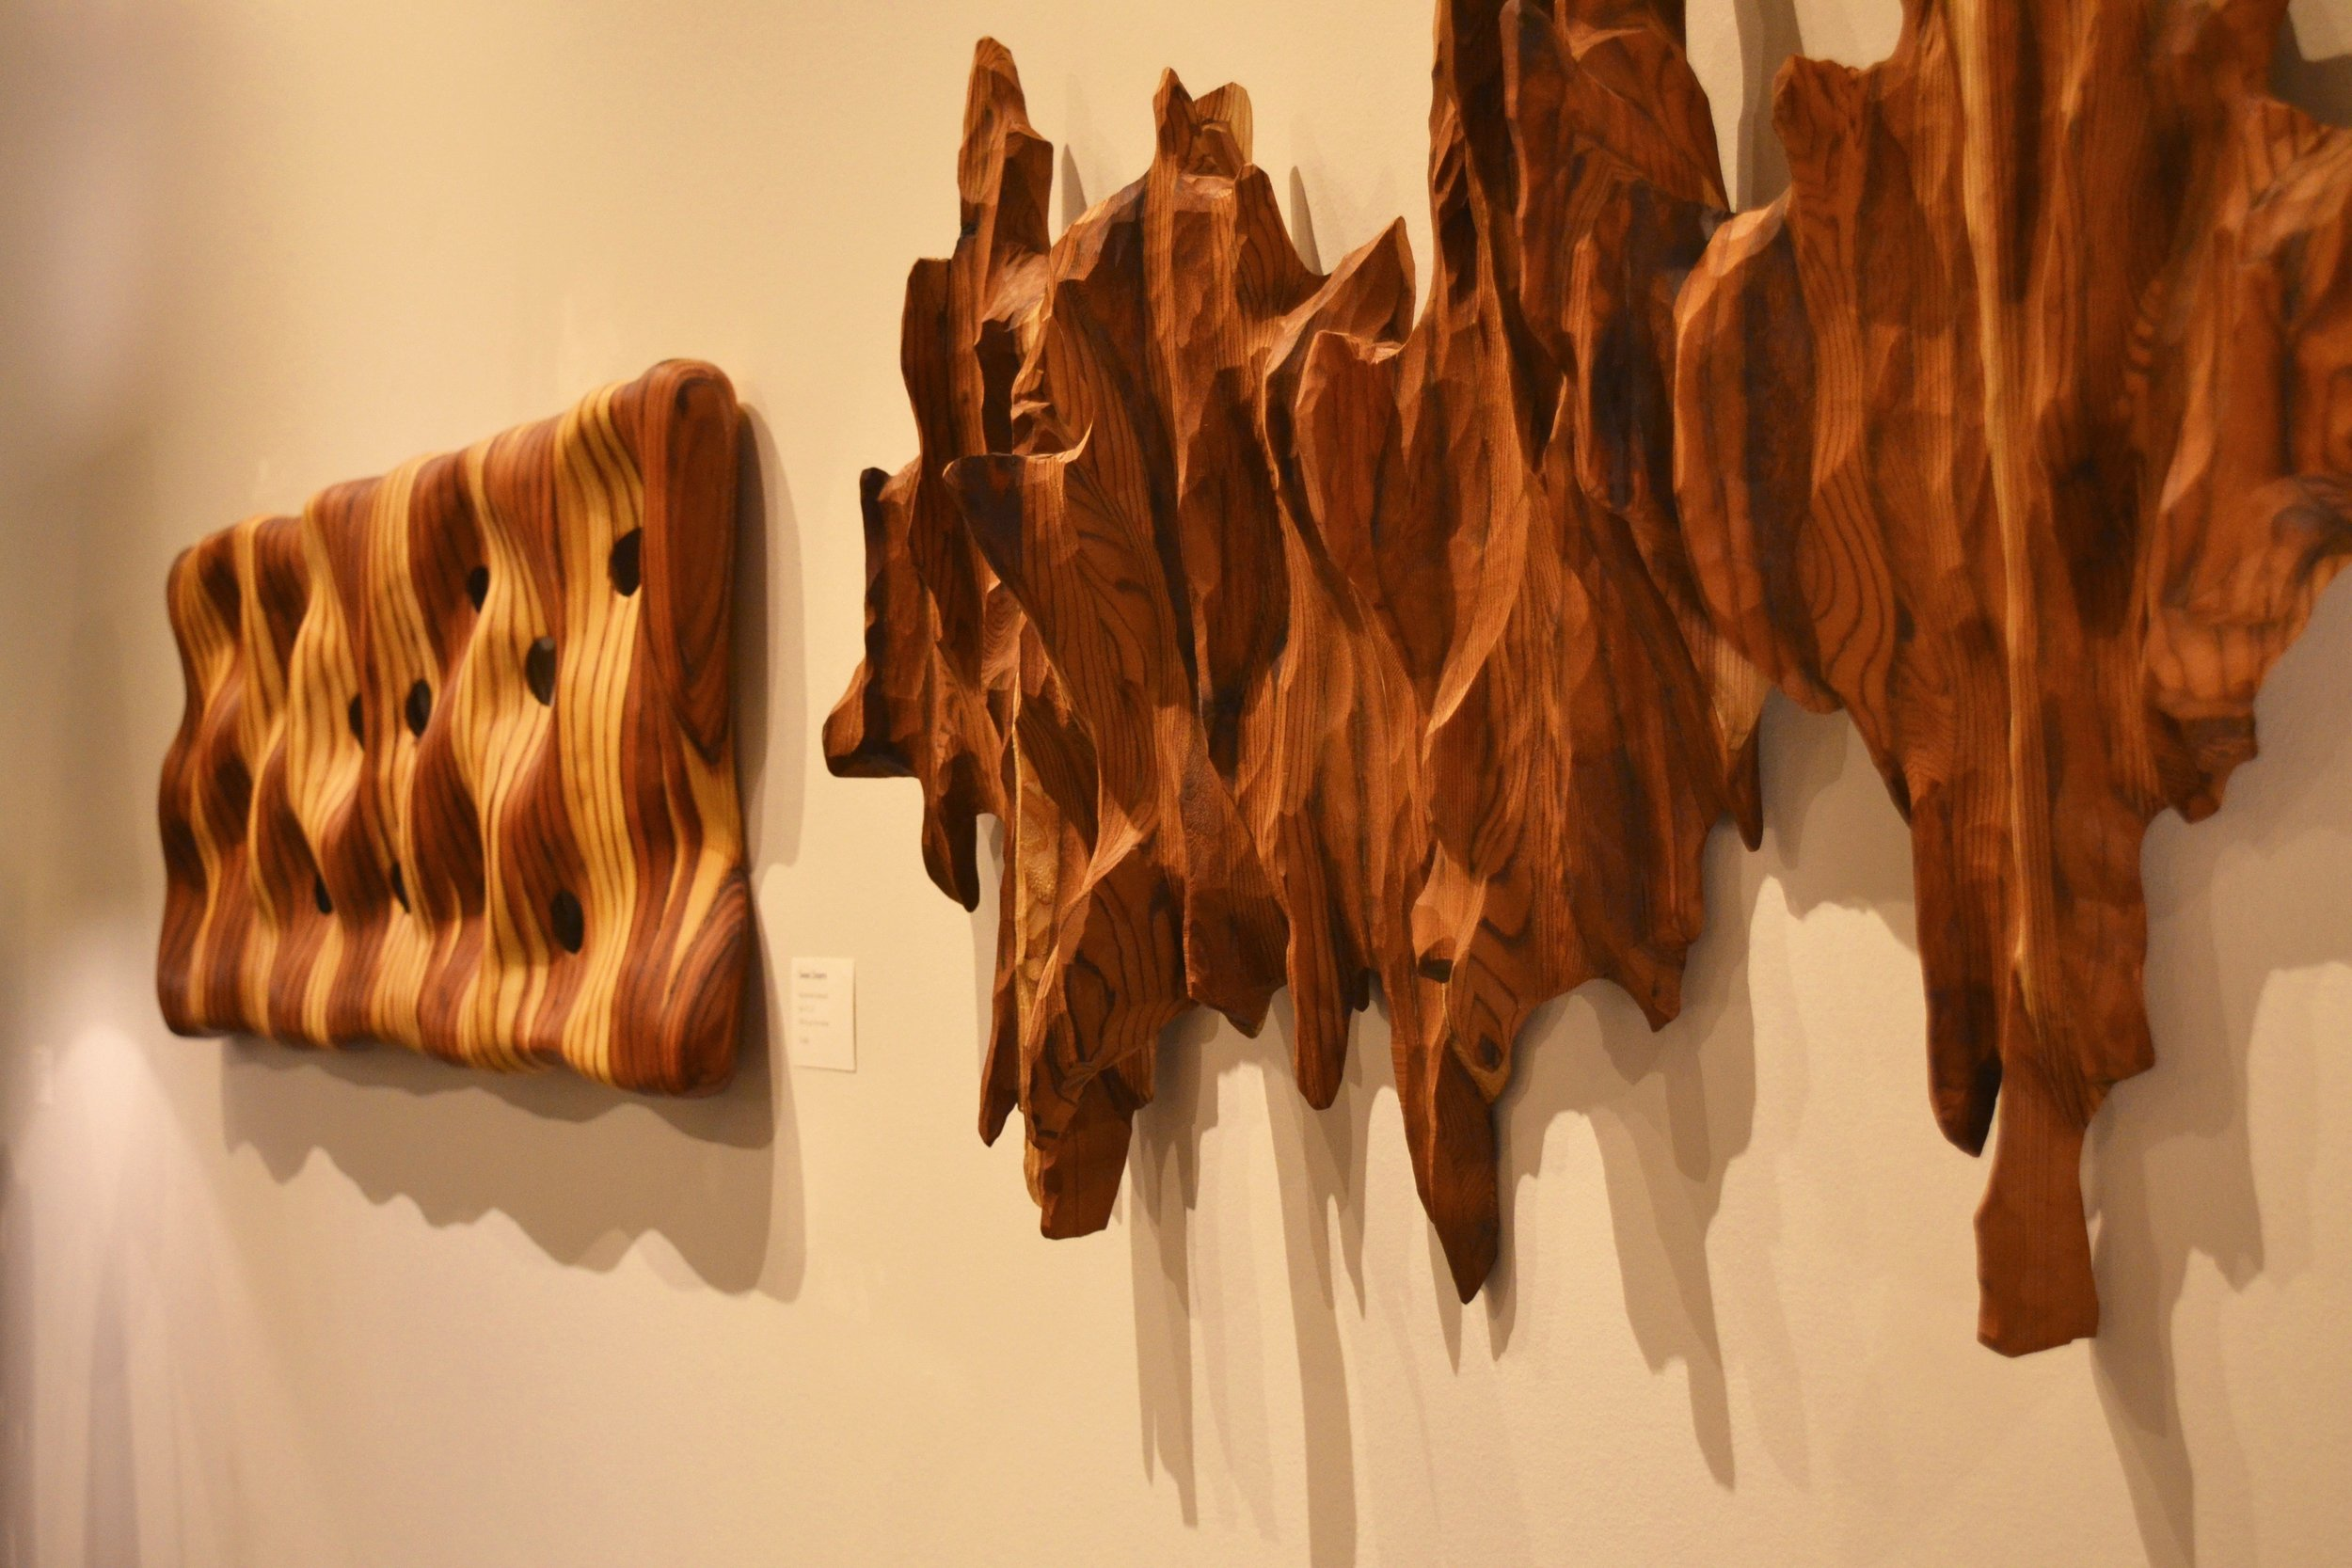 Sculpture Gallery of Contemporary Wall Art - San Francisco - by Lutz Hornischer